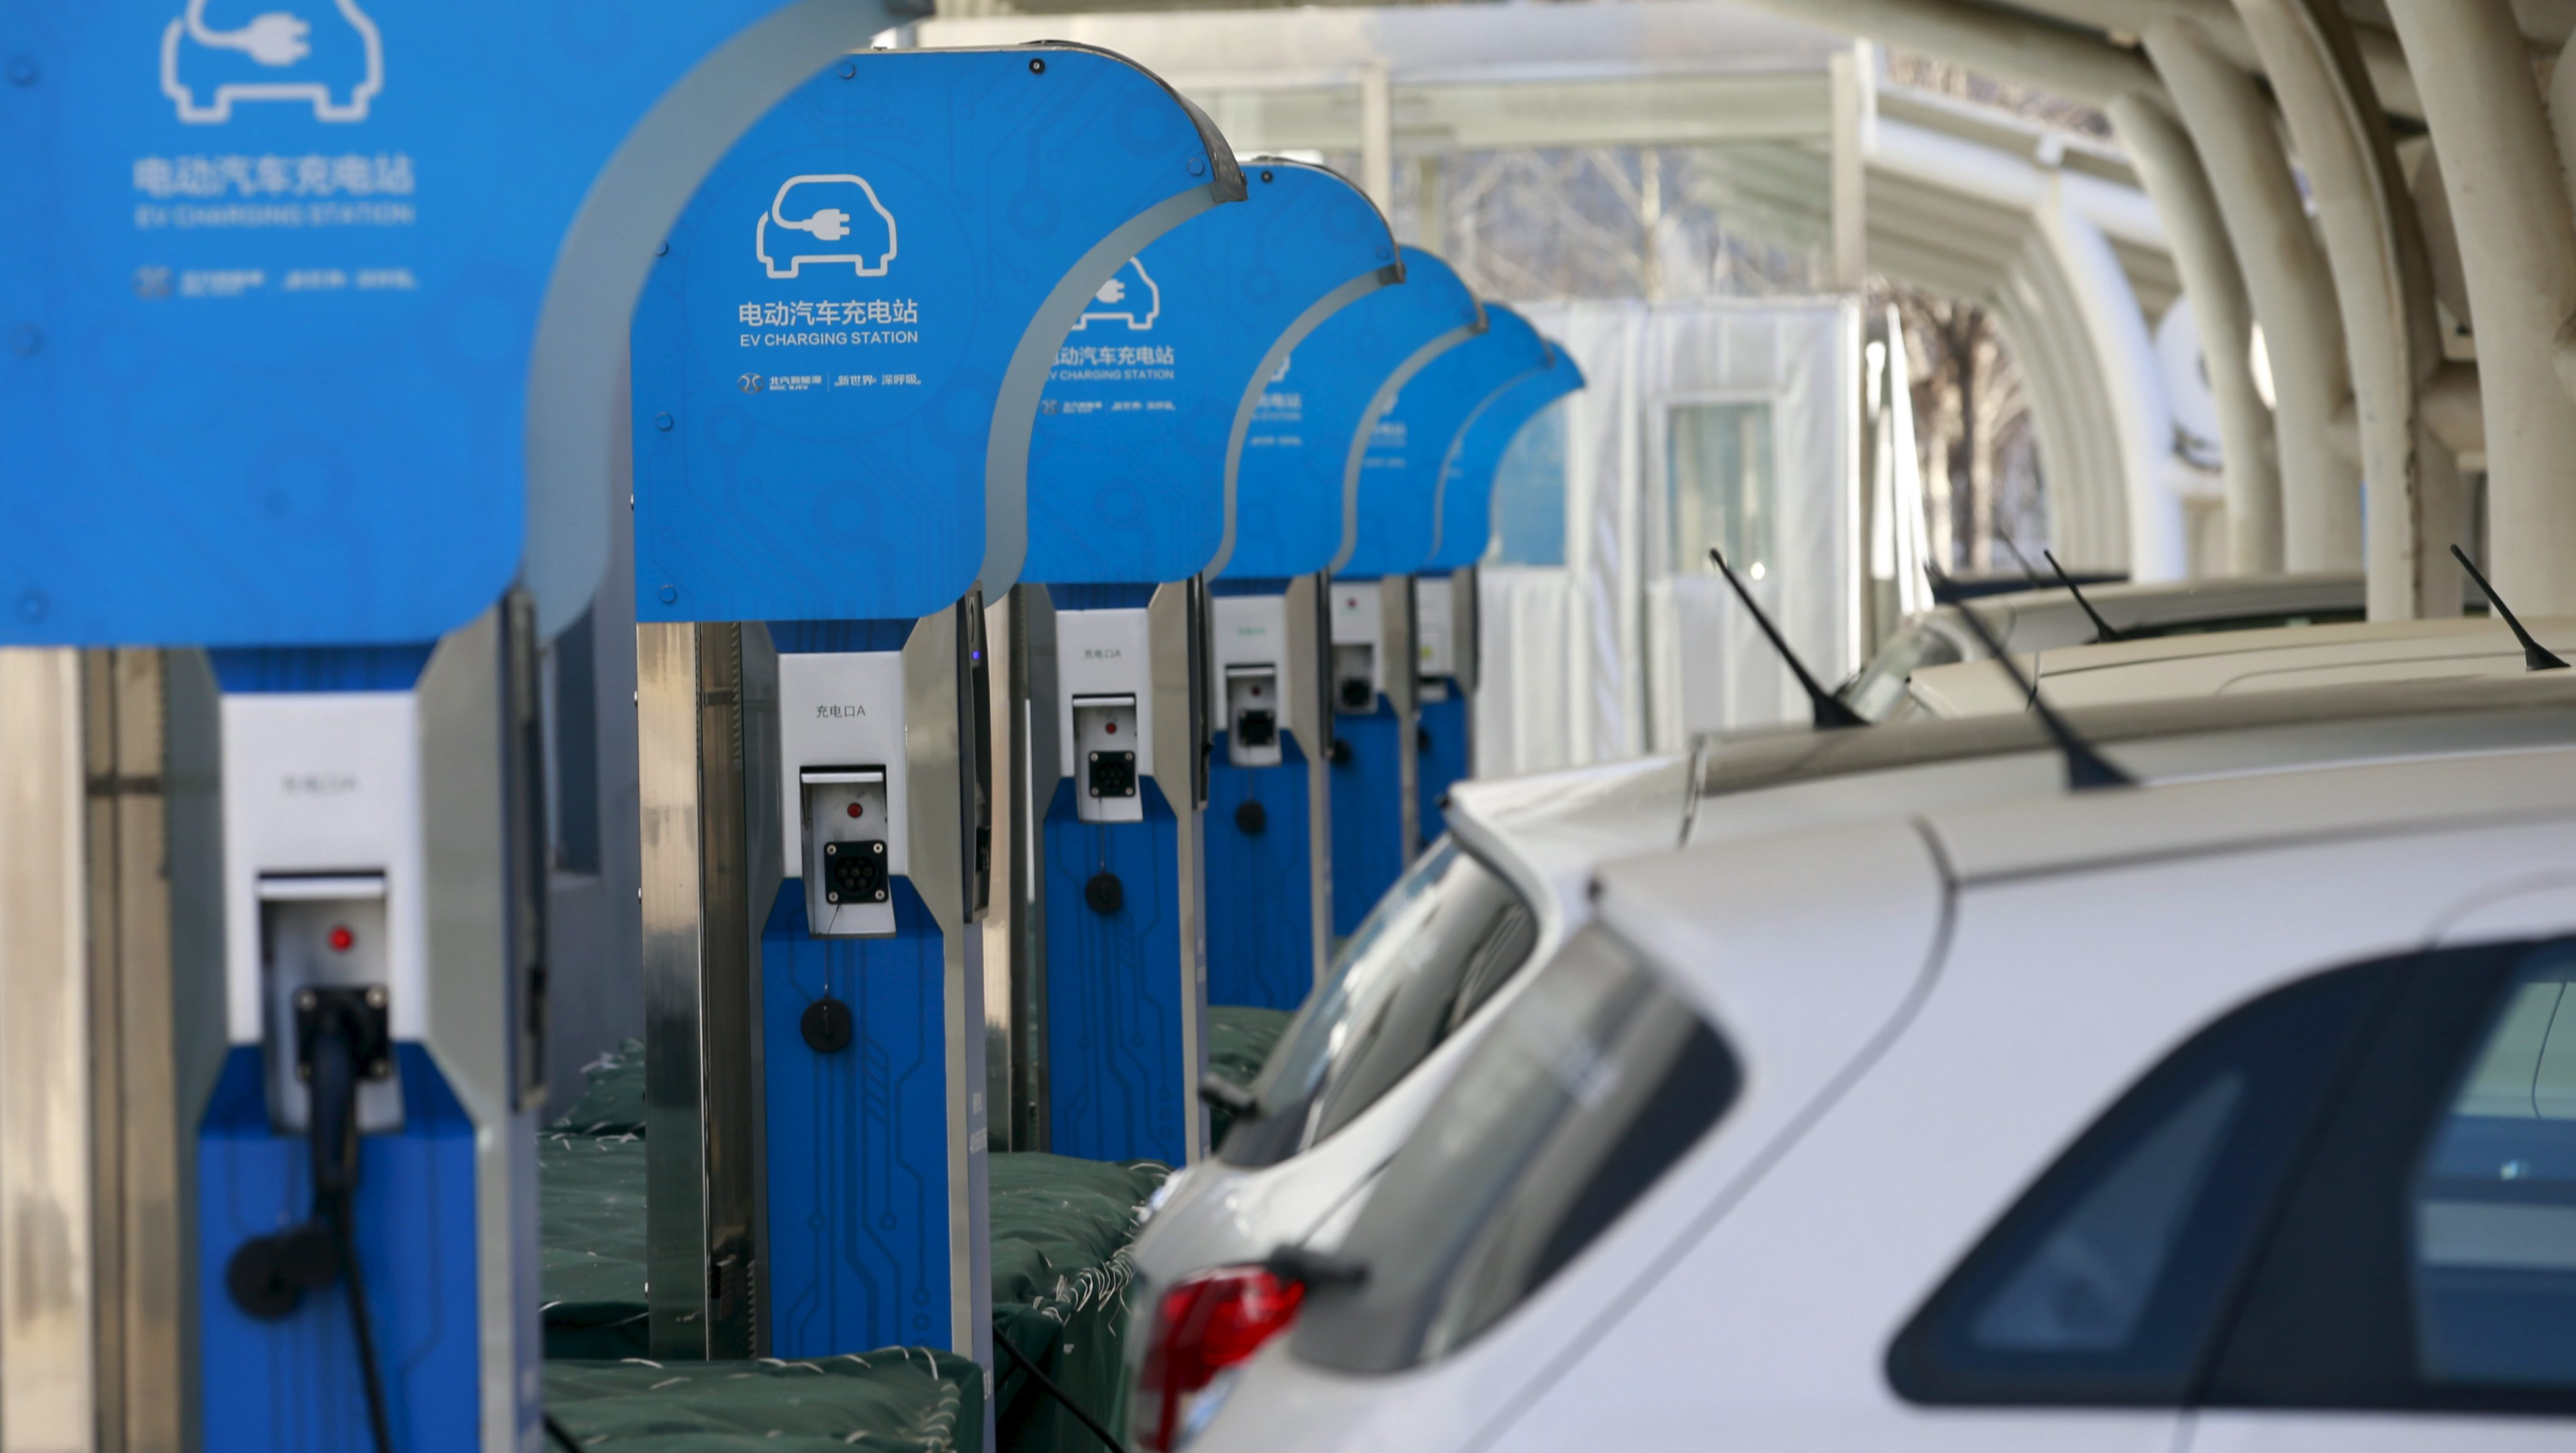 An Electric Vehicle (EV) charging station is seen at a factory of Beijing Electric Vehicle, funded by BAIC Group, in Beijing, China, January 18, 2016. Picture taken January 18. REUTERS/Kim Kyung-Hoon